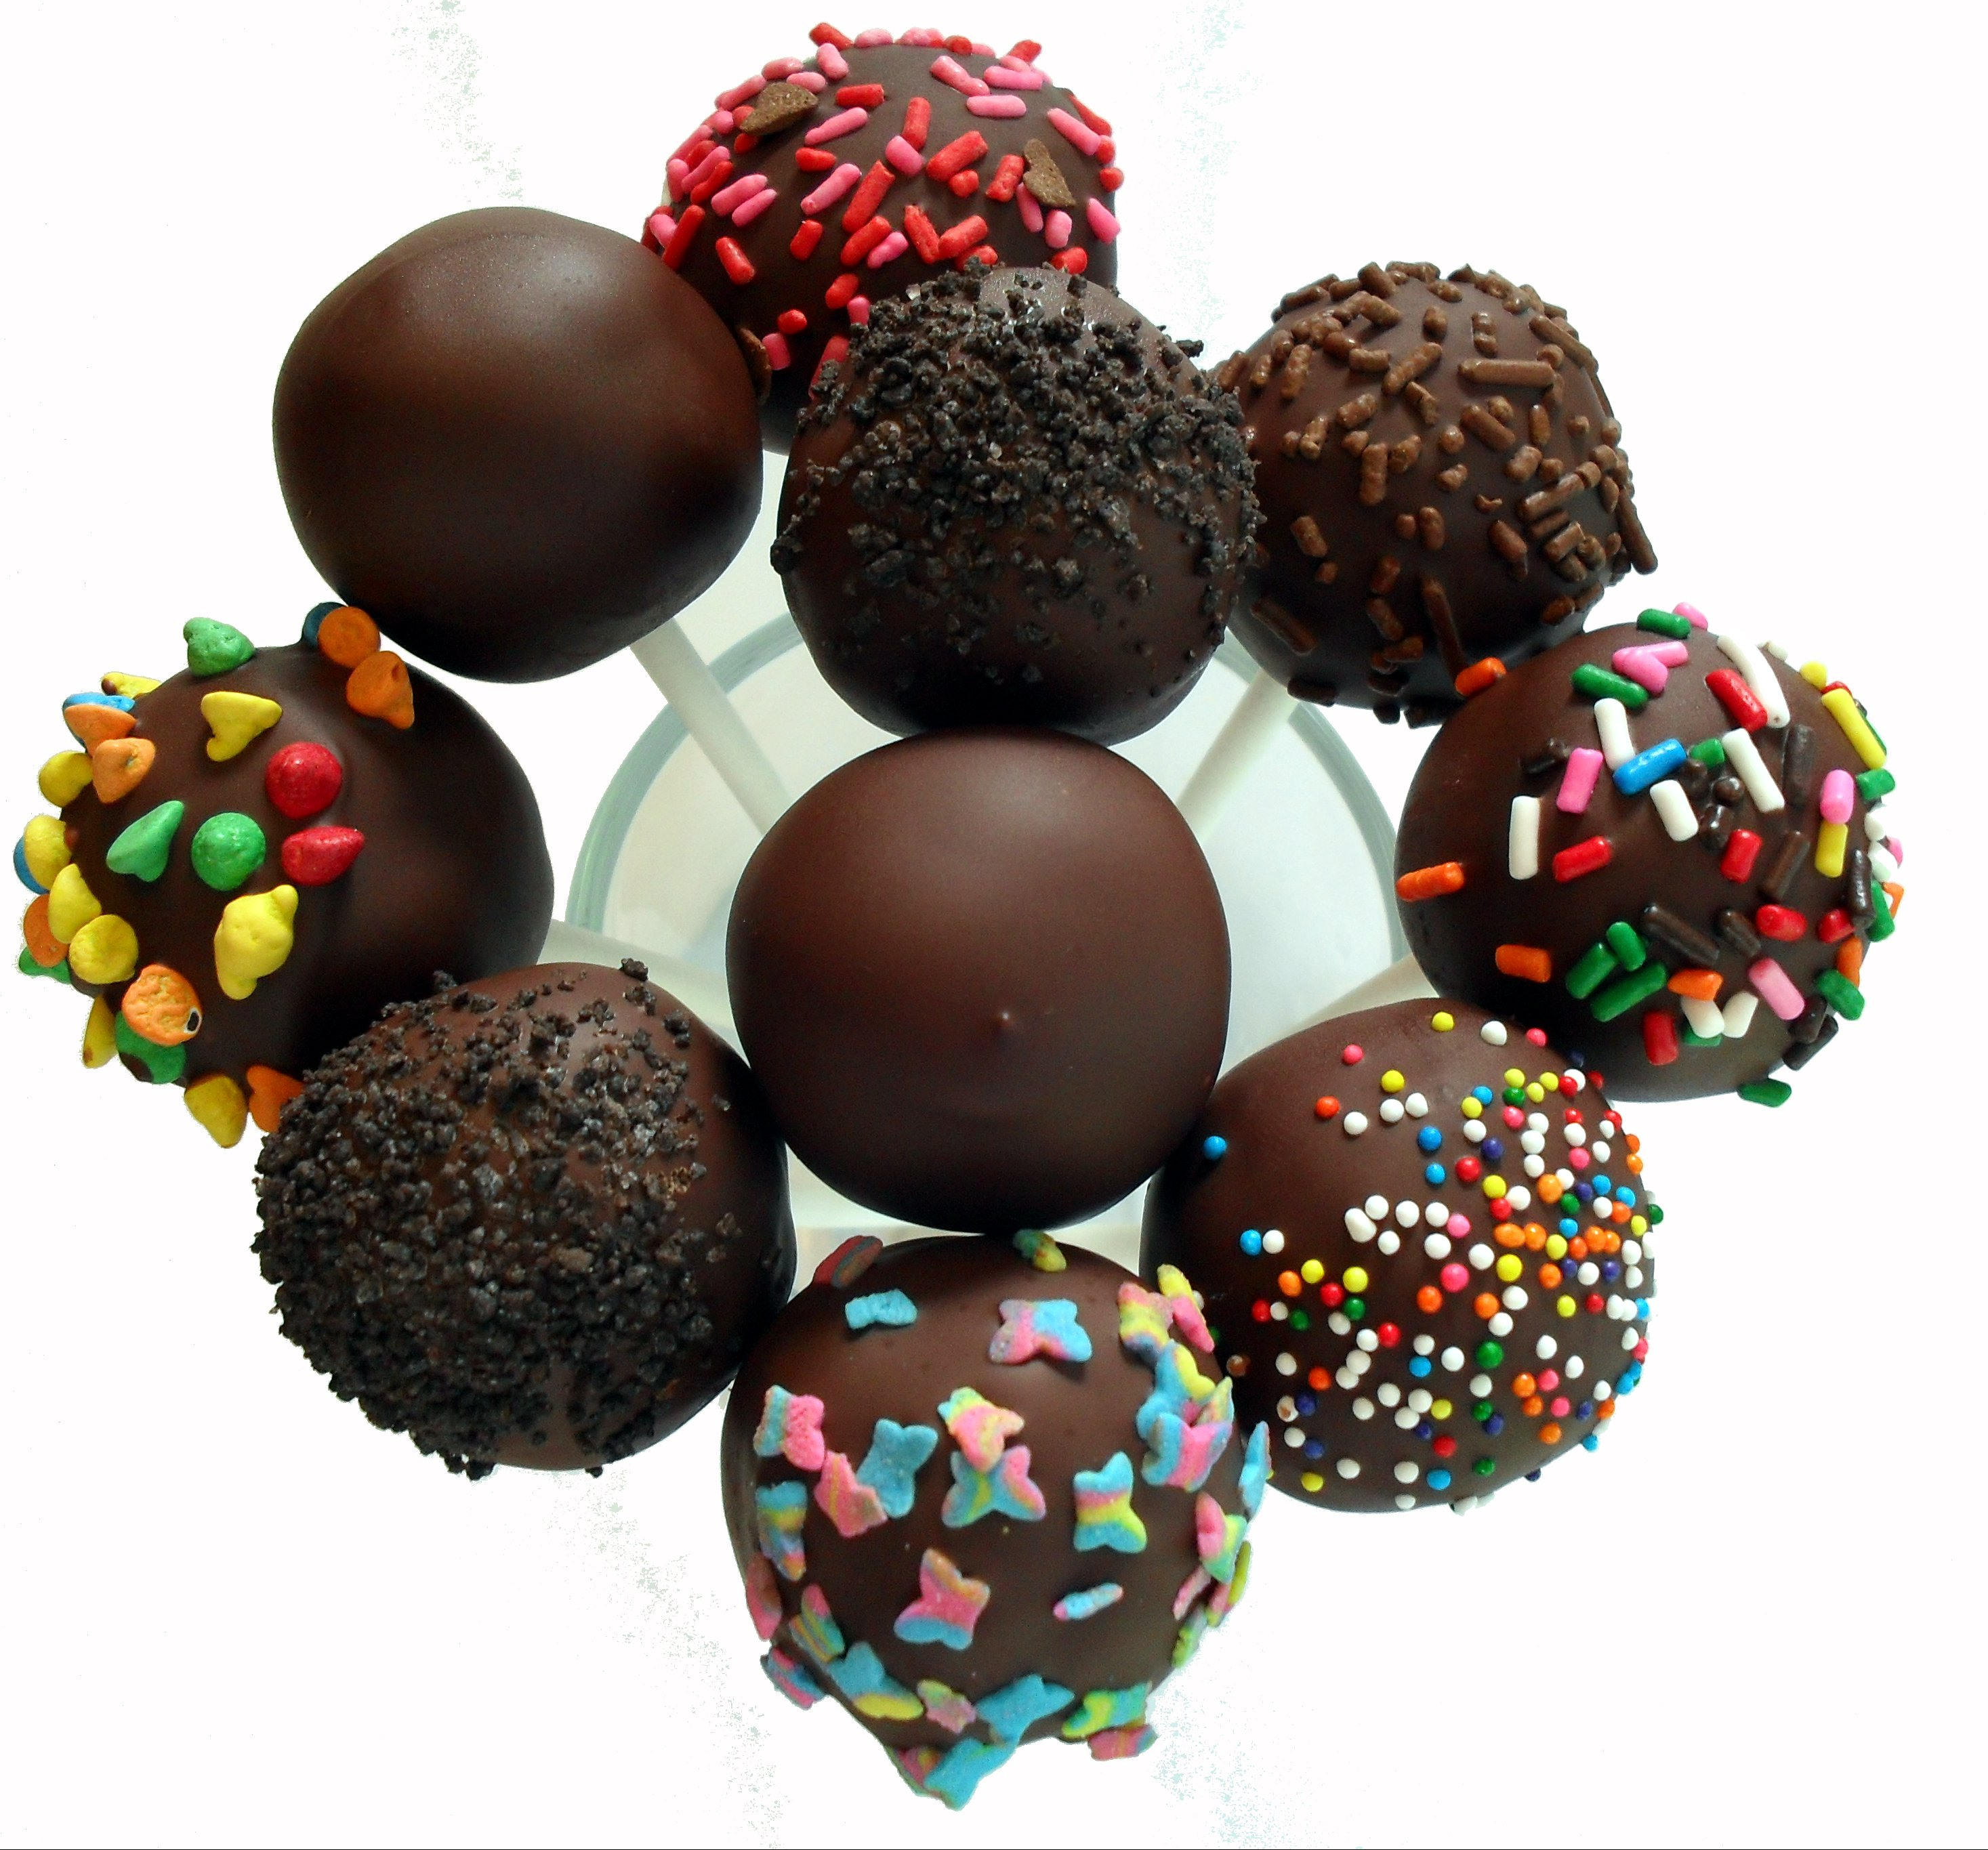 Dense Chocolate Cake Recipe For Cake Pops